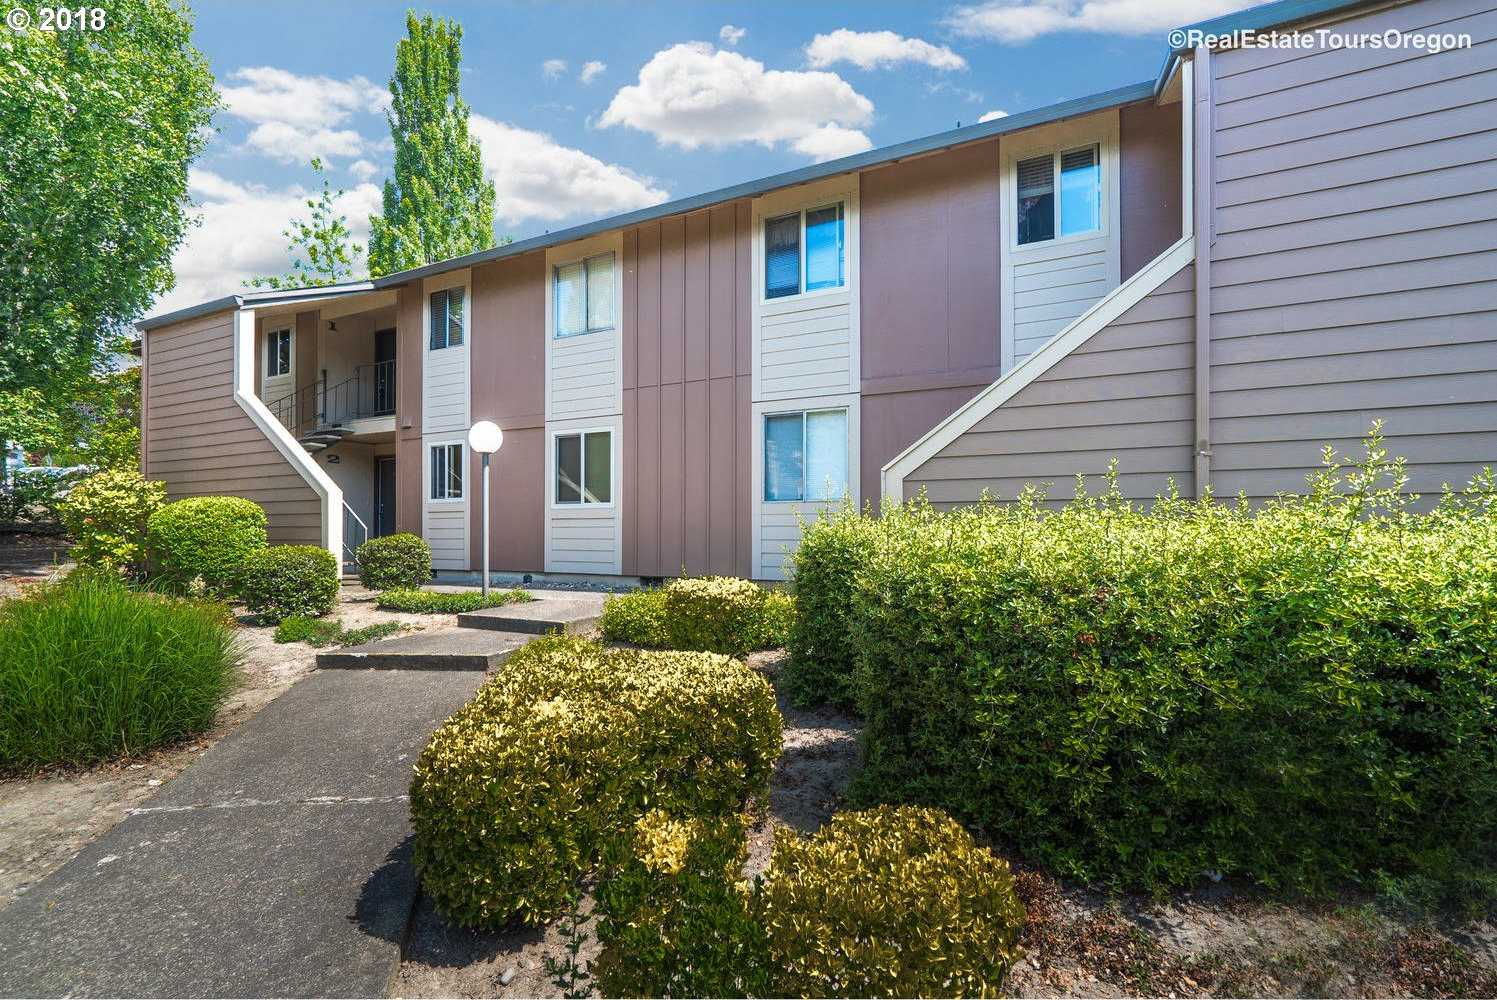 $165,000 - 2Br/1Ba -  for Sale in Portland